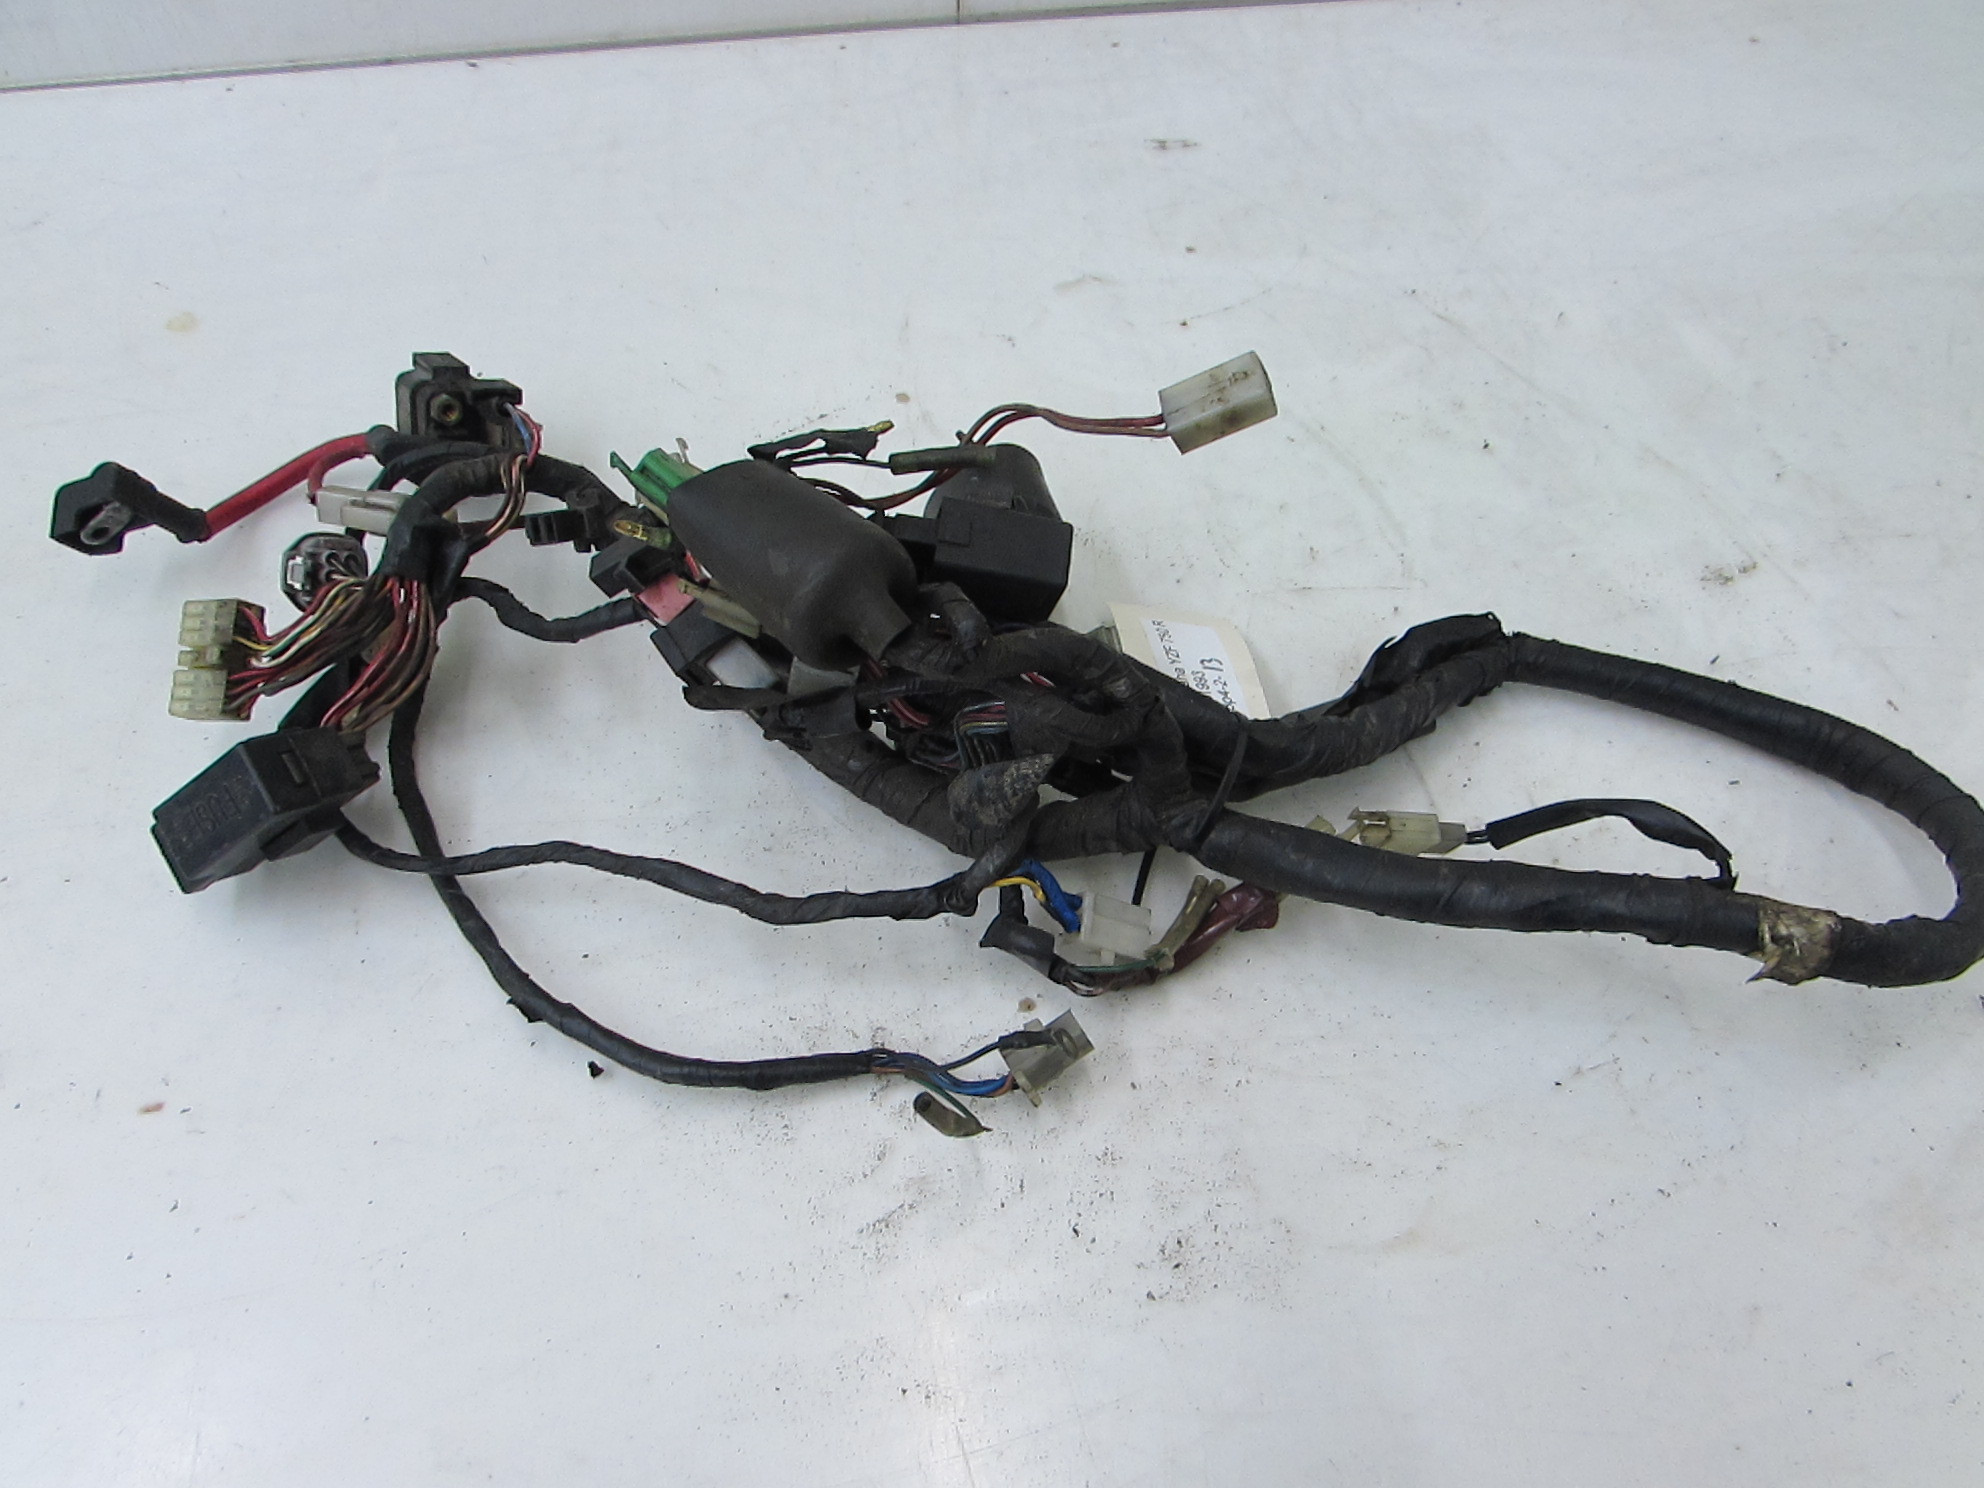 Wire Harness Yamaha Yzf 750 19931995 201332594 Motorparts. Wire Harness Yamaha Yzf 750. Wiring. Yzf 750 Wiring Harness At Scoala.co